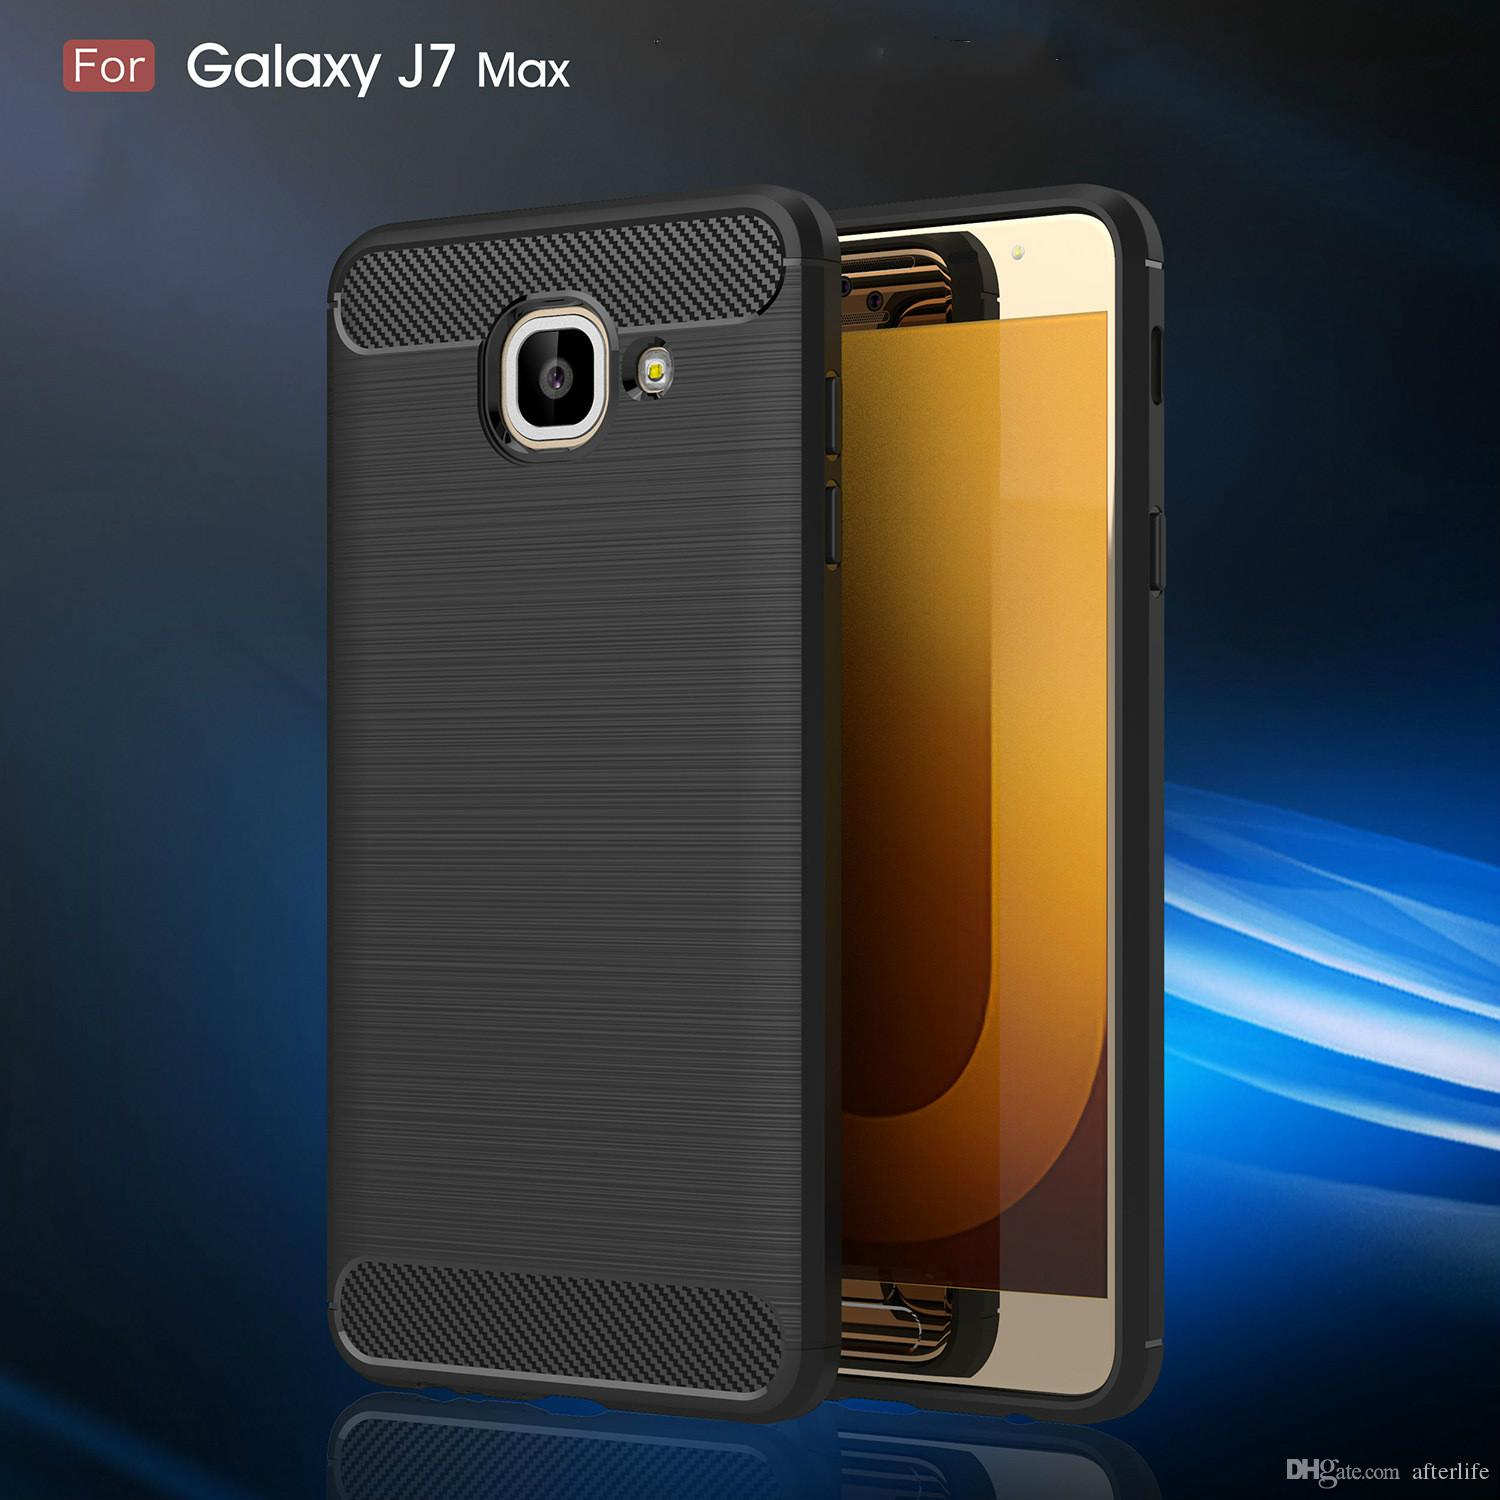 reputable site 454d3 e2c5f Fashion Luxury Phone Case For Samsung J7 Max Case Silicon TPU Coque Hard  Soft Tpu Anti Knock Back Cover For Samsung Galaxy J7 Max Unique Cell Phone  ...